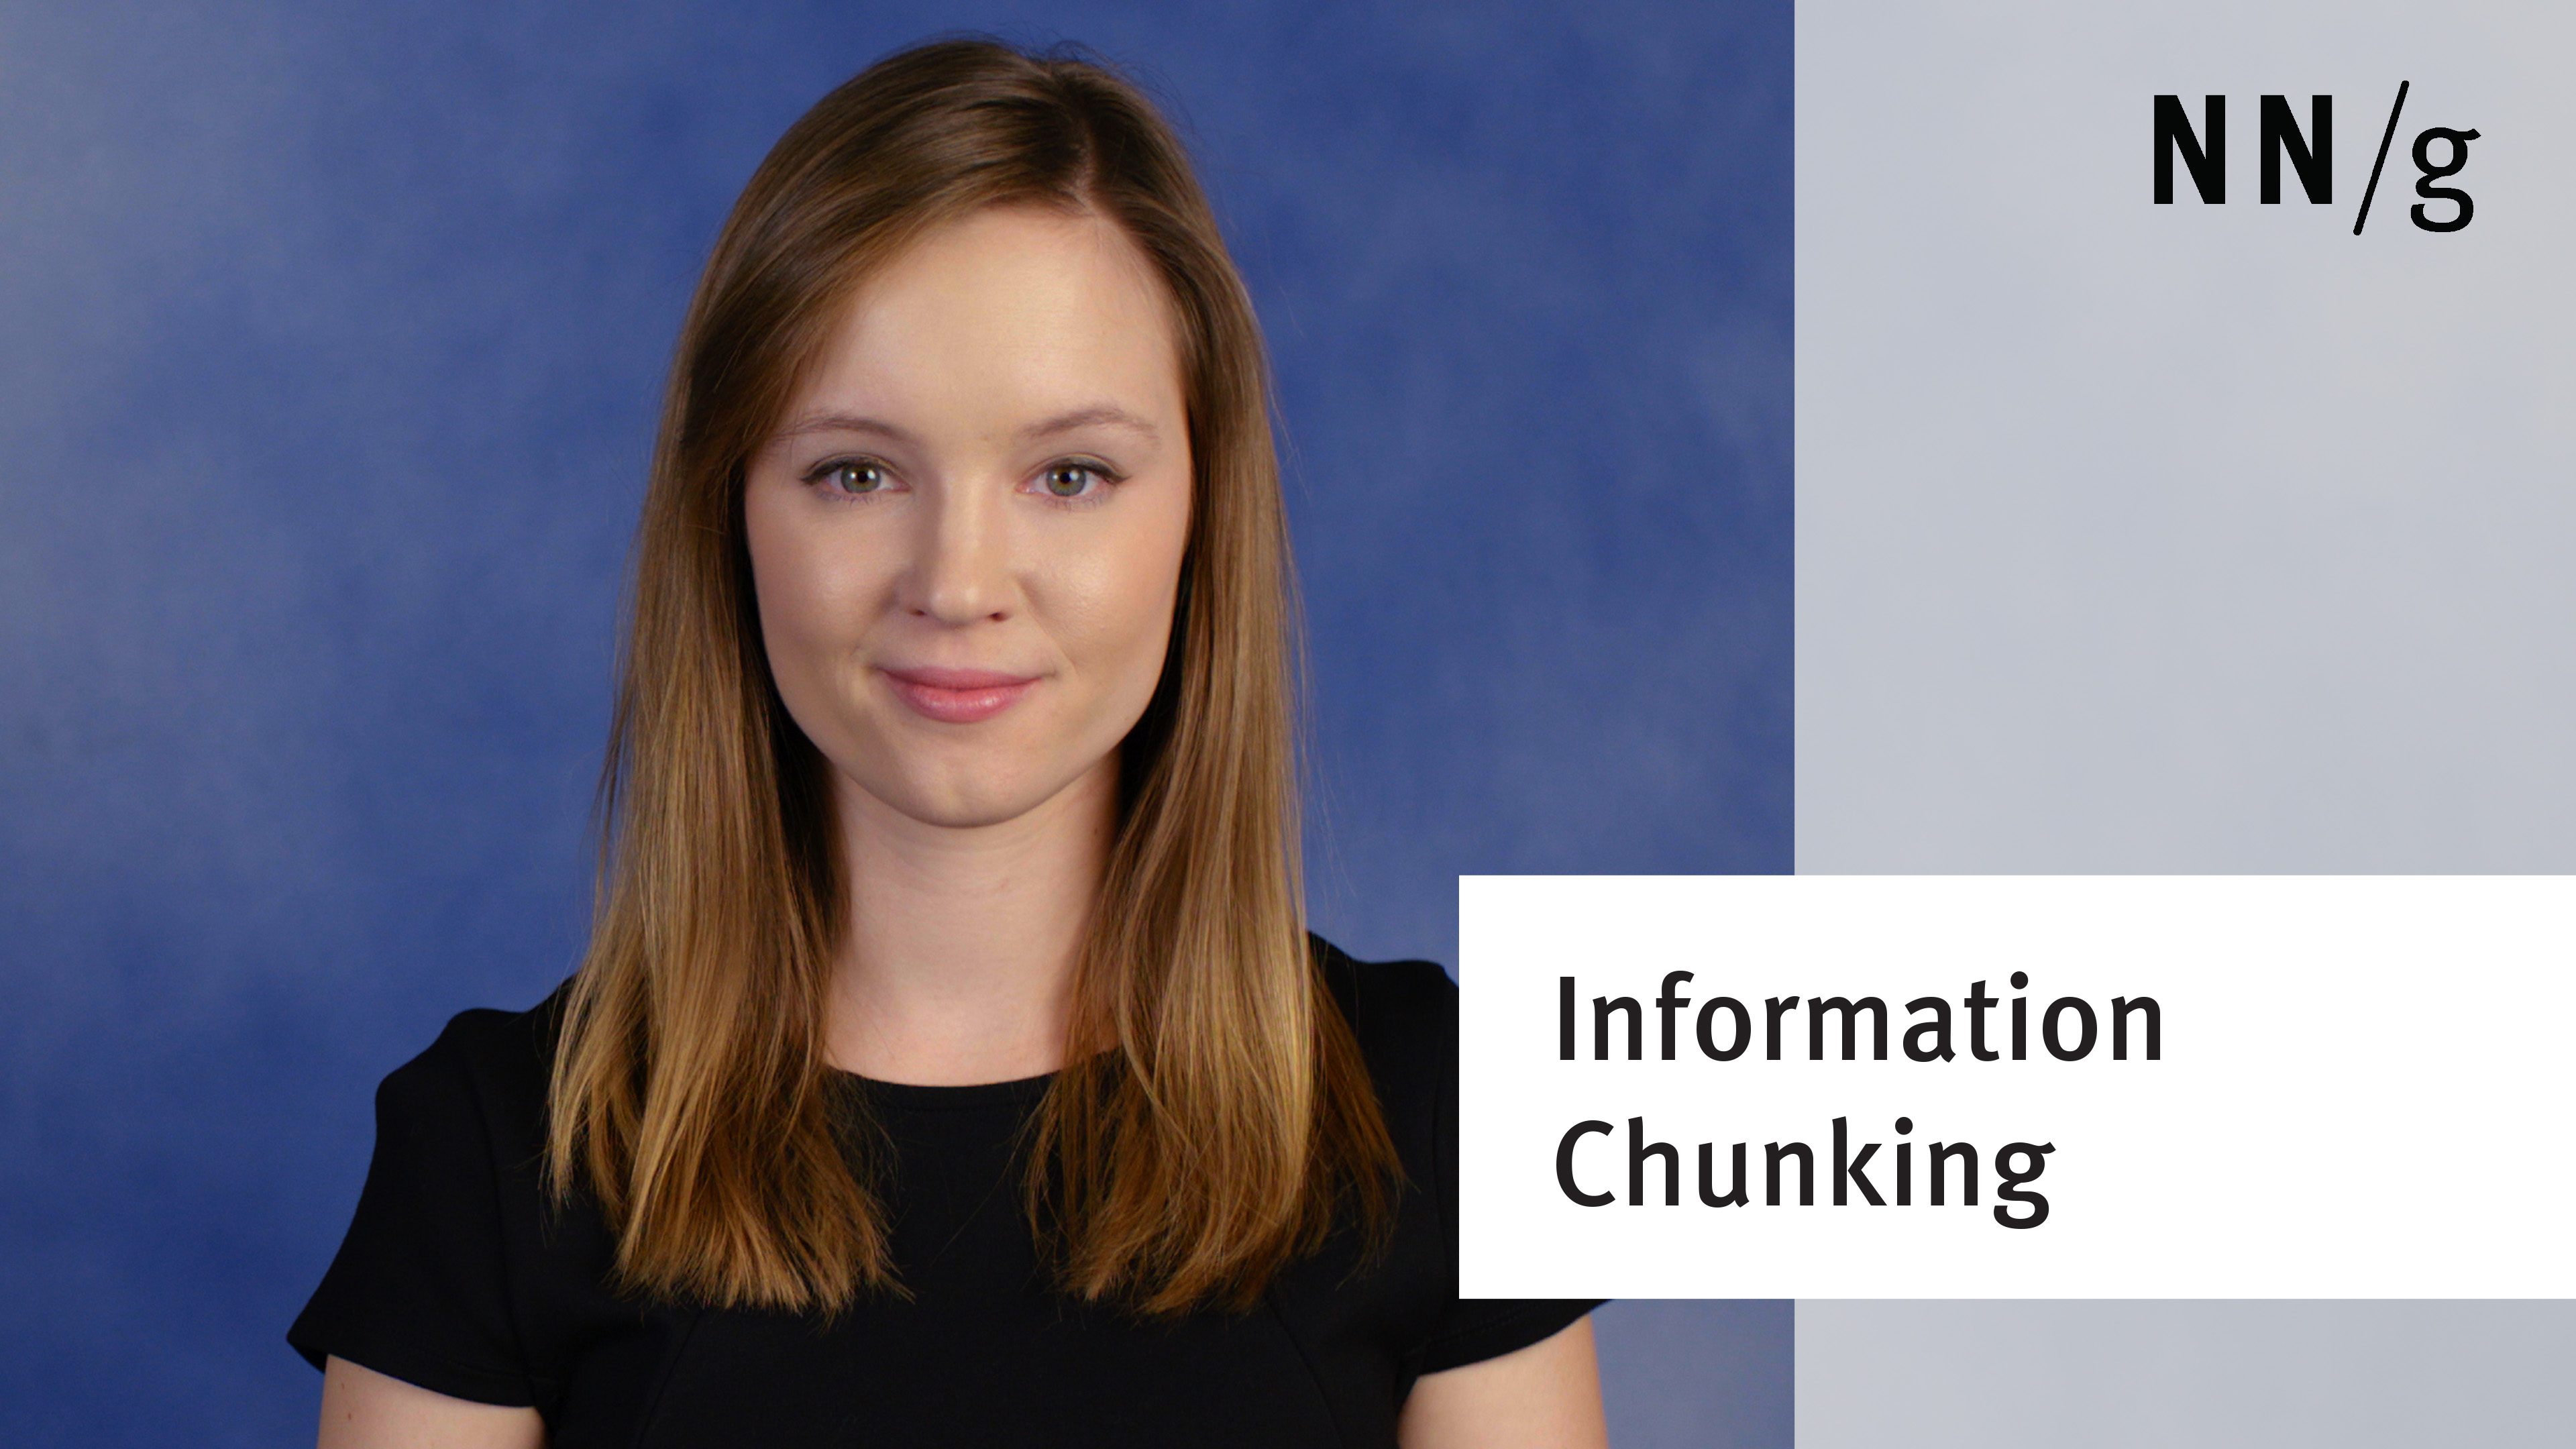 Why Chunking Content is Important